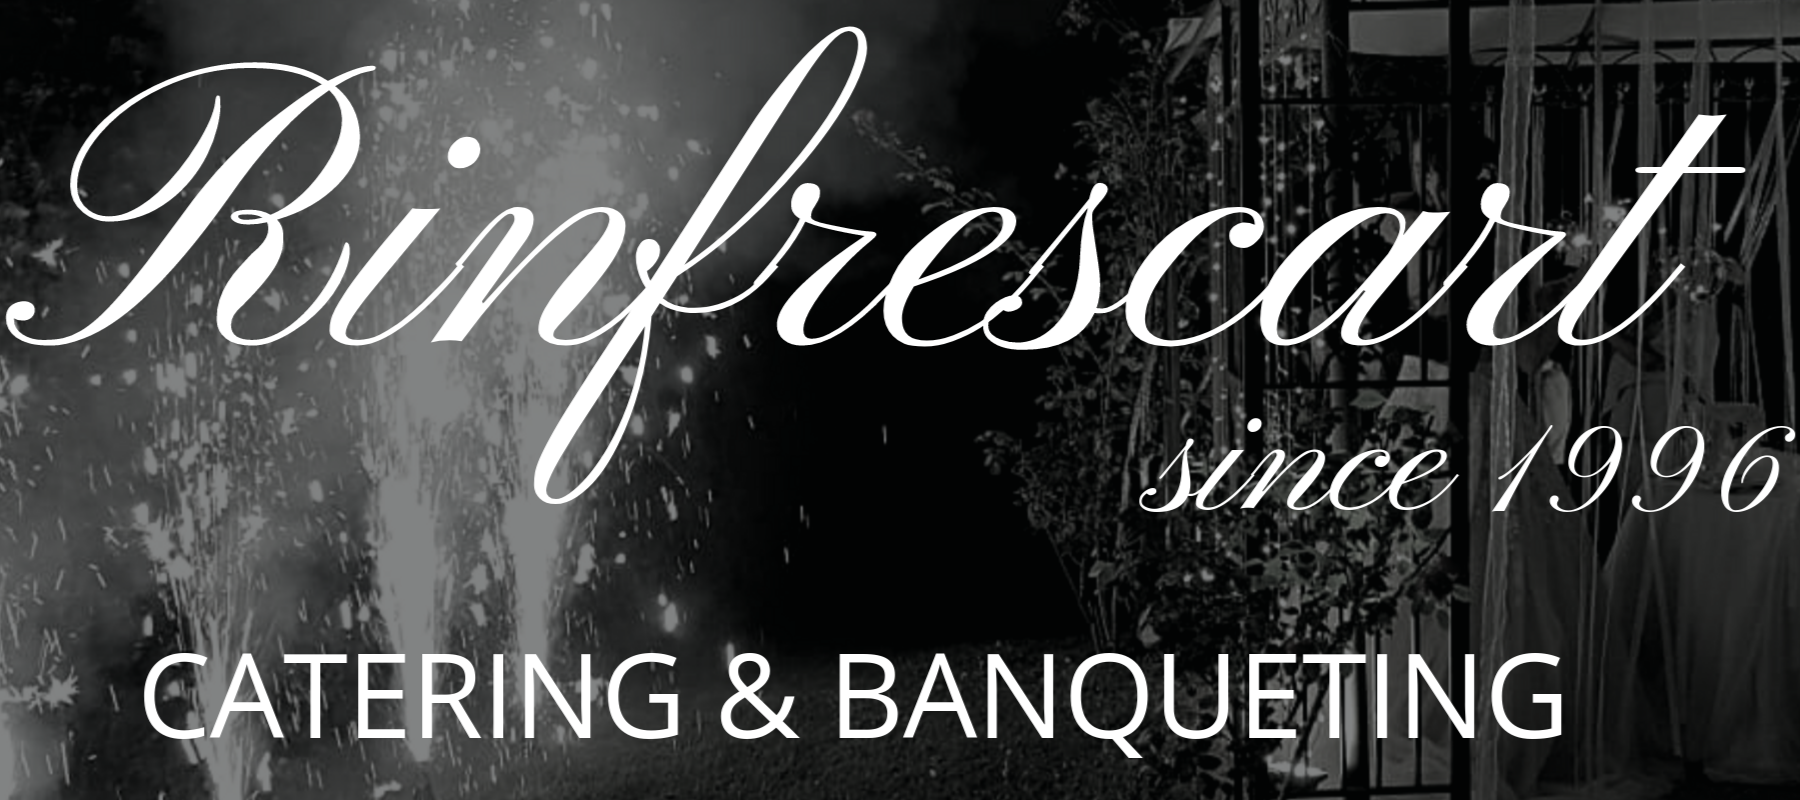 Rinfrescart catering & banqueting